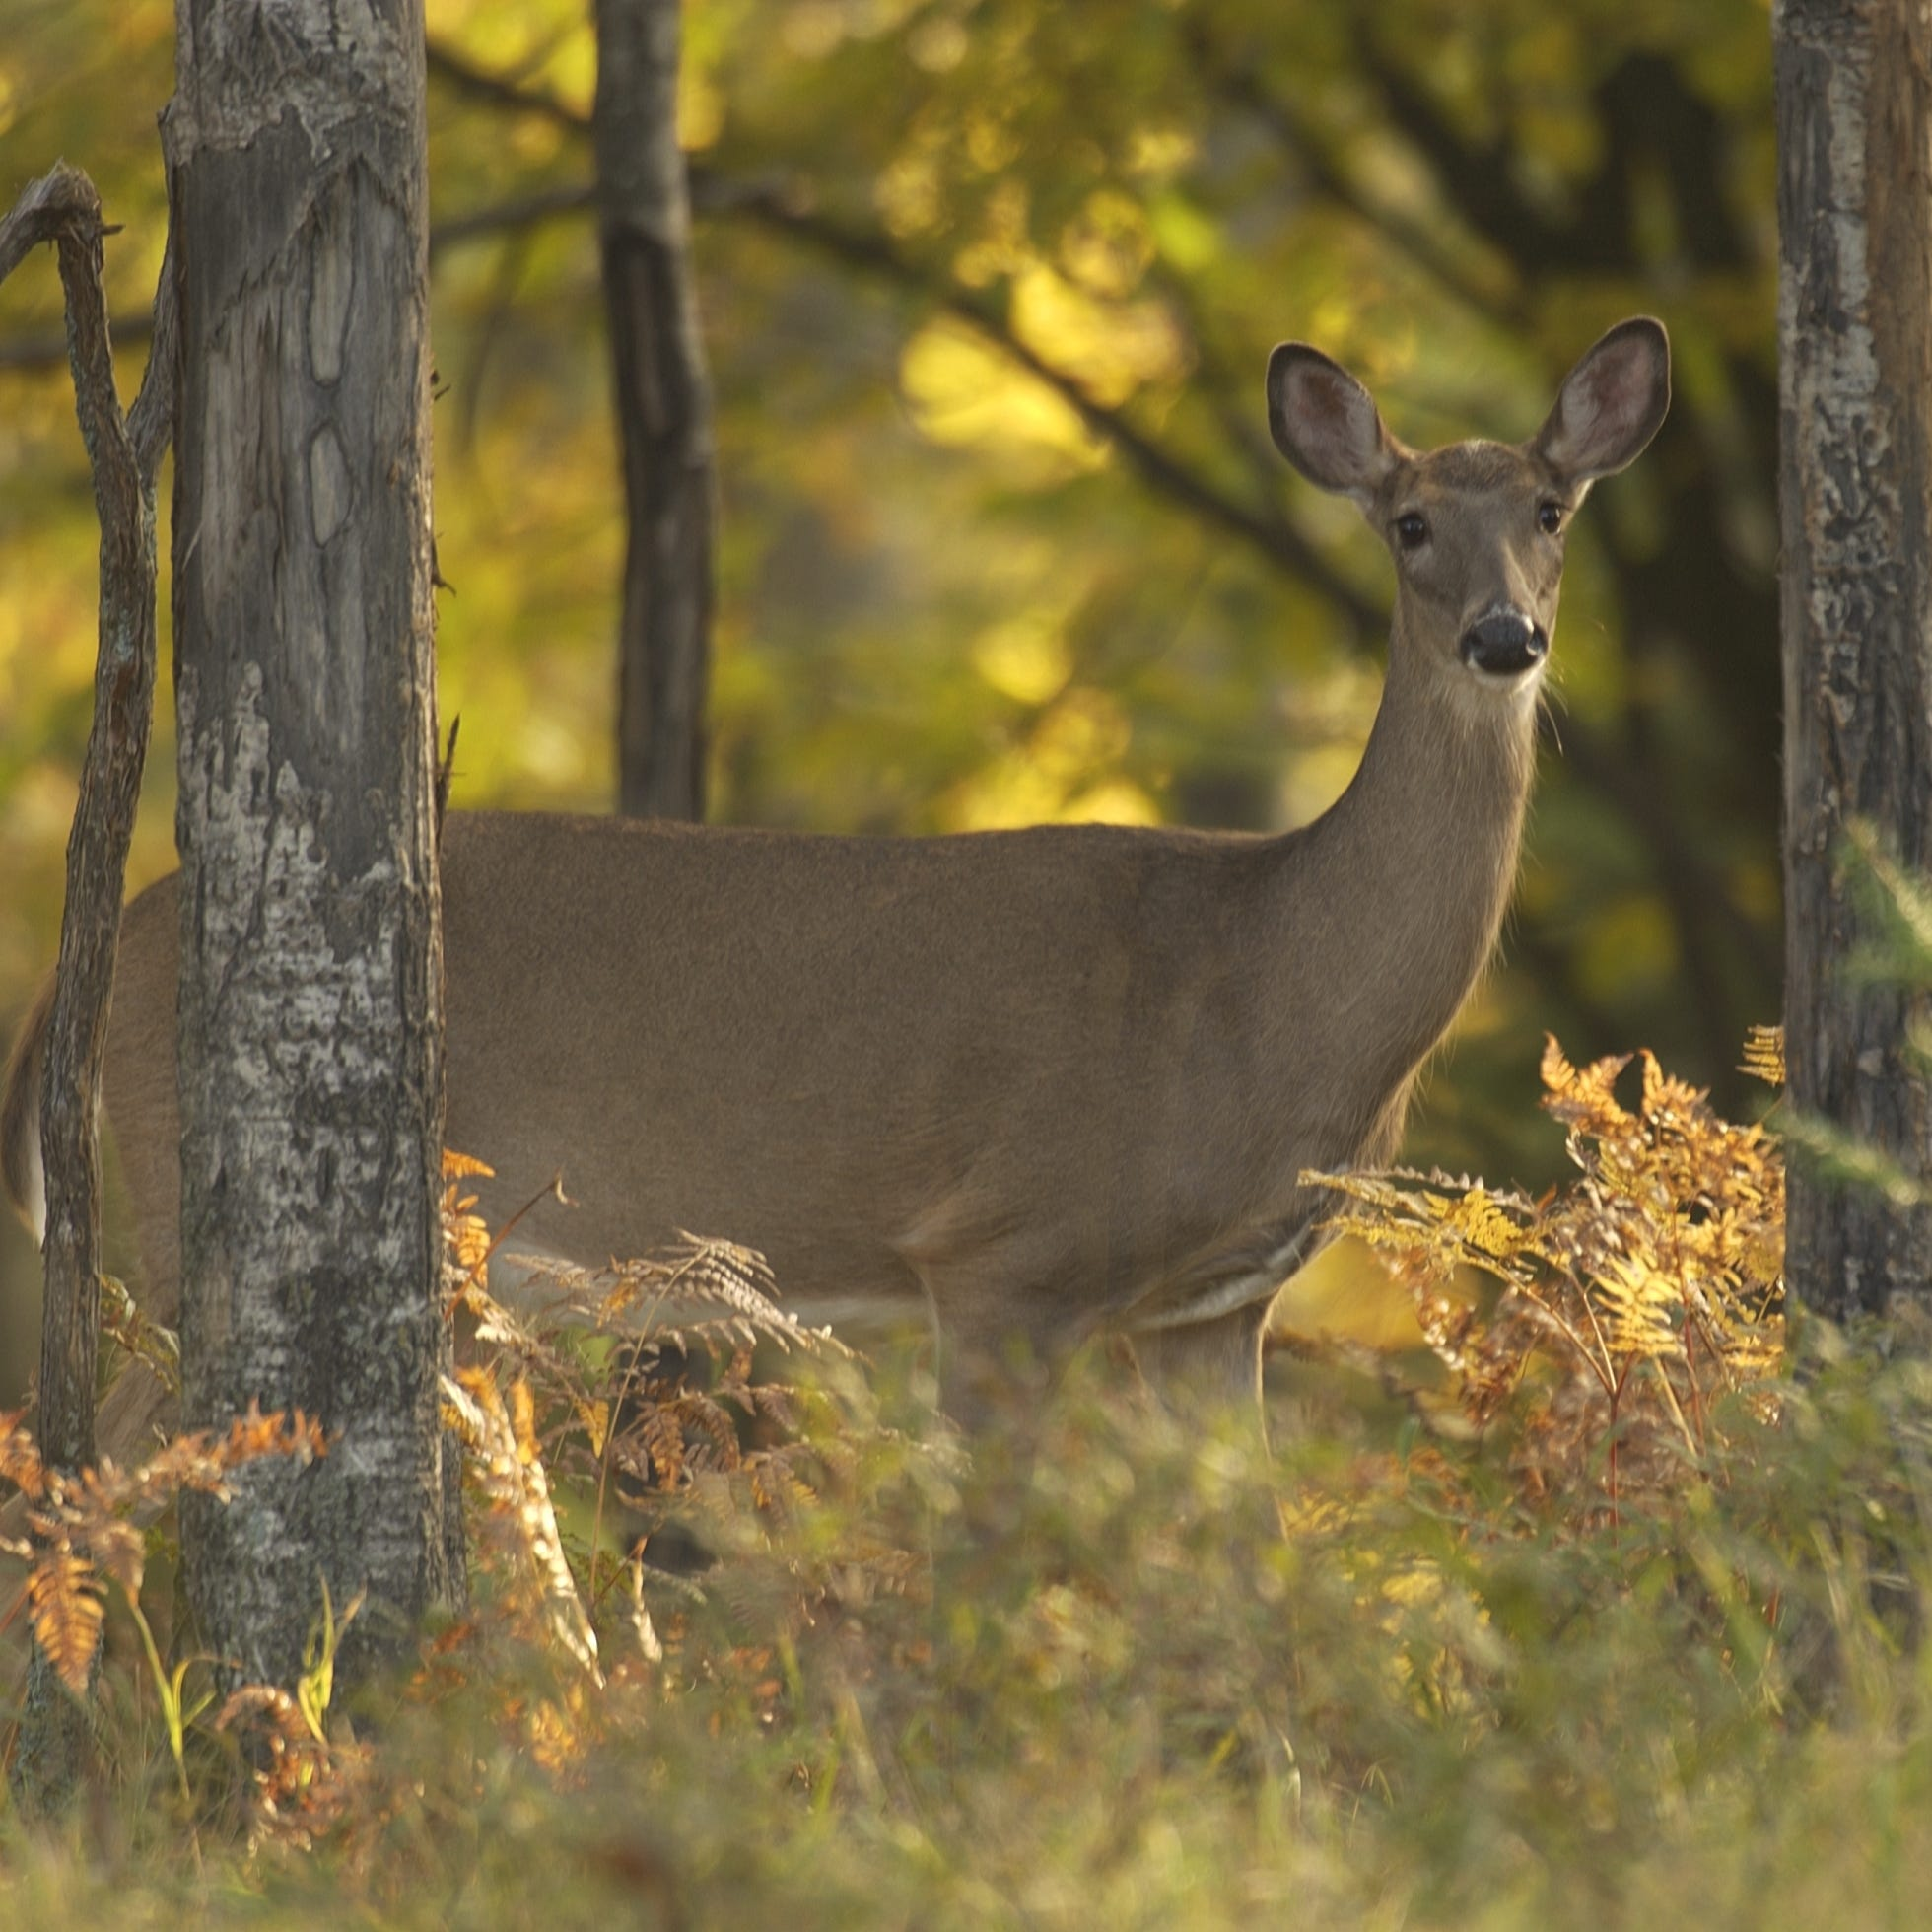 The state has approved new regulations designed to slow the spread of fatal chronic wasting disease.